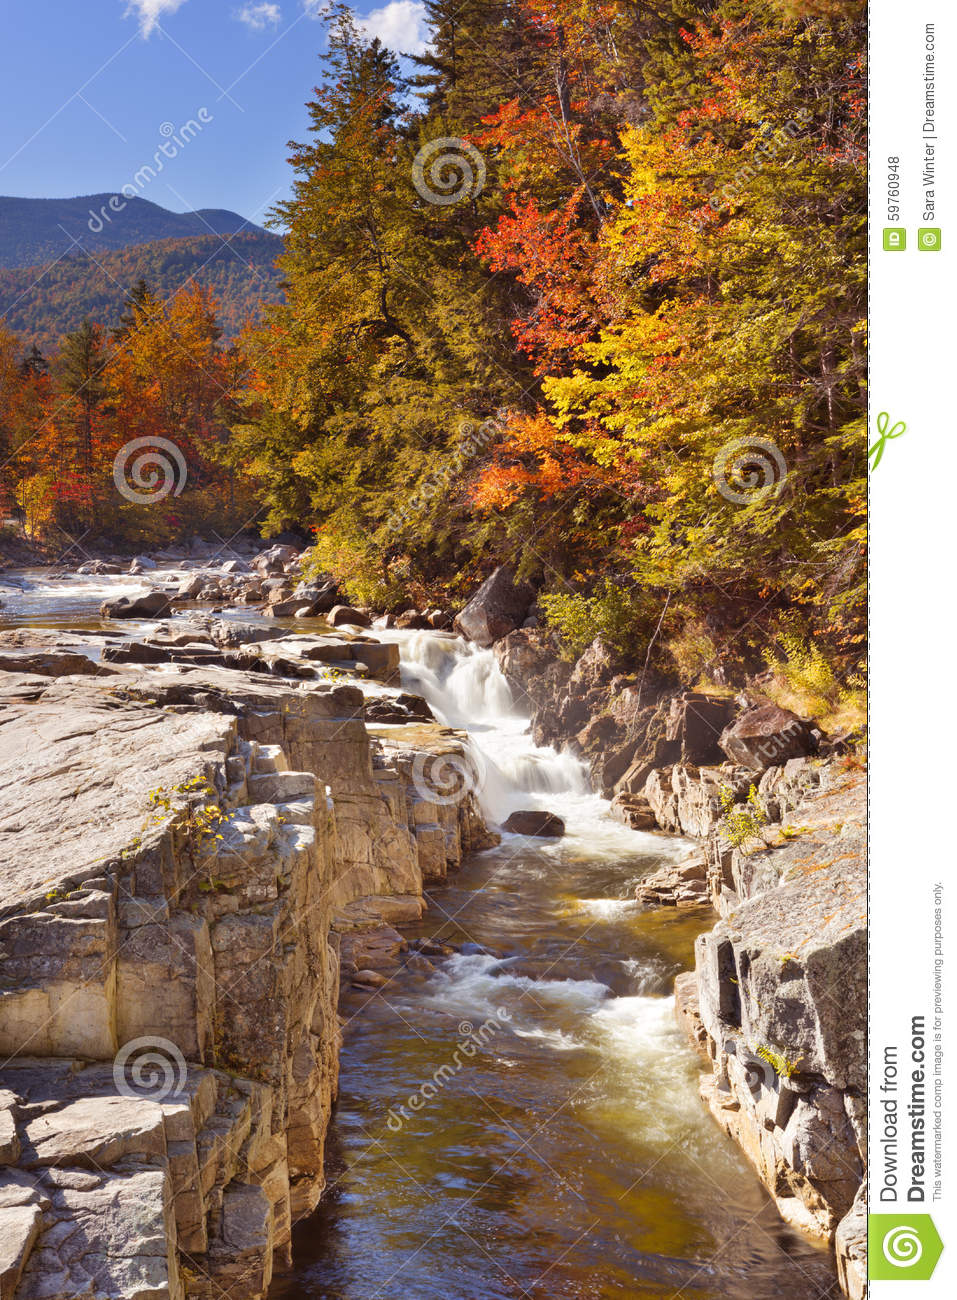 Download River Through Fall Foliage, Rocky Gorge, Swift River, NH, USA Stock Photo - Image of landscape, mountain: 59760948